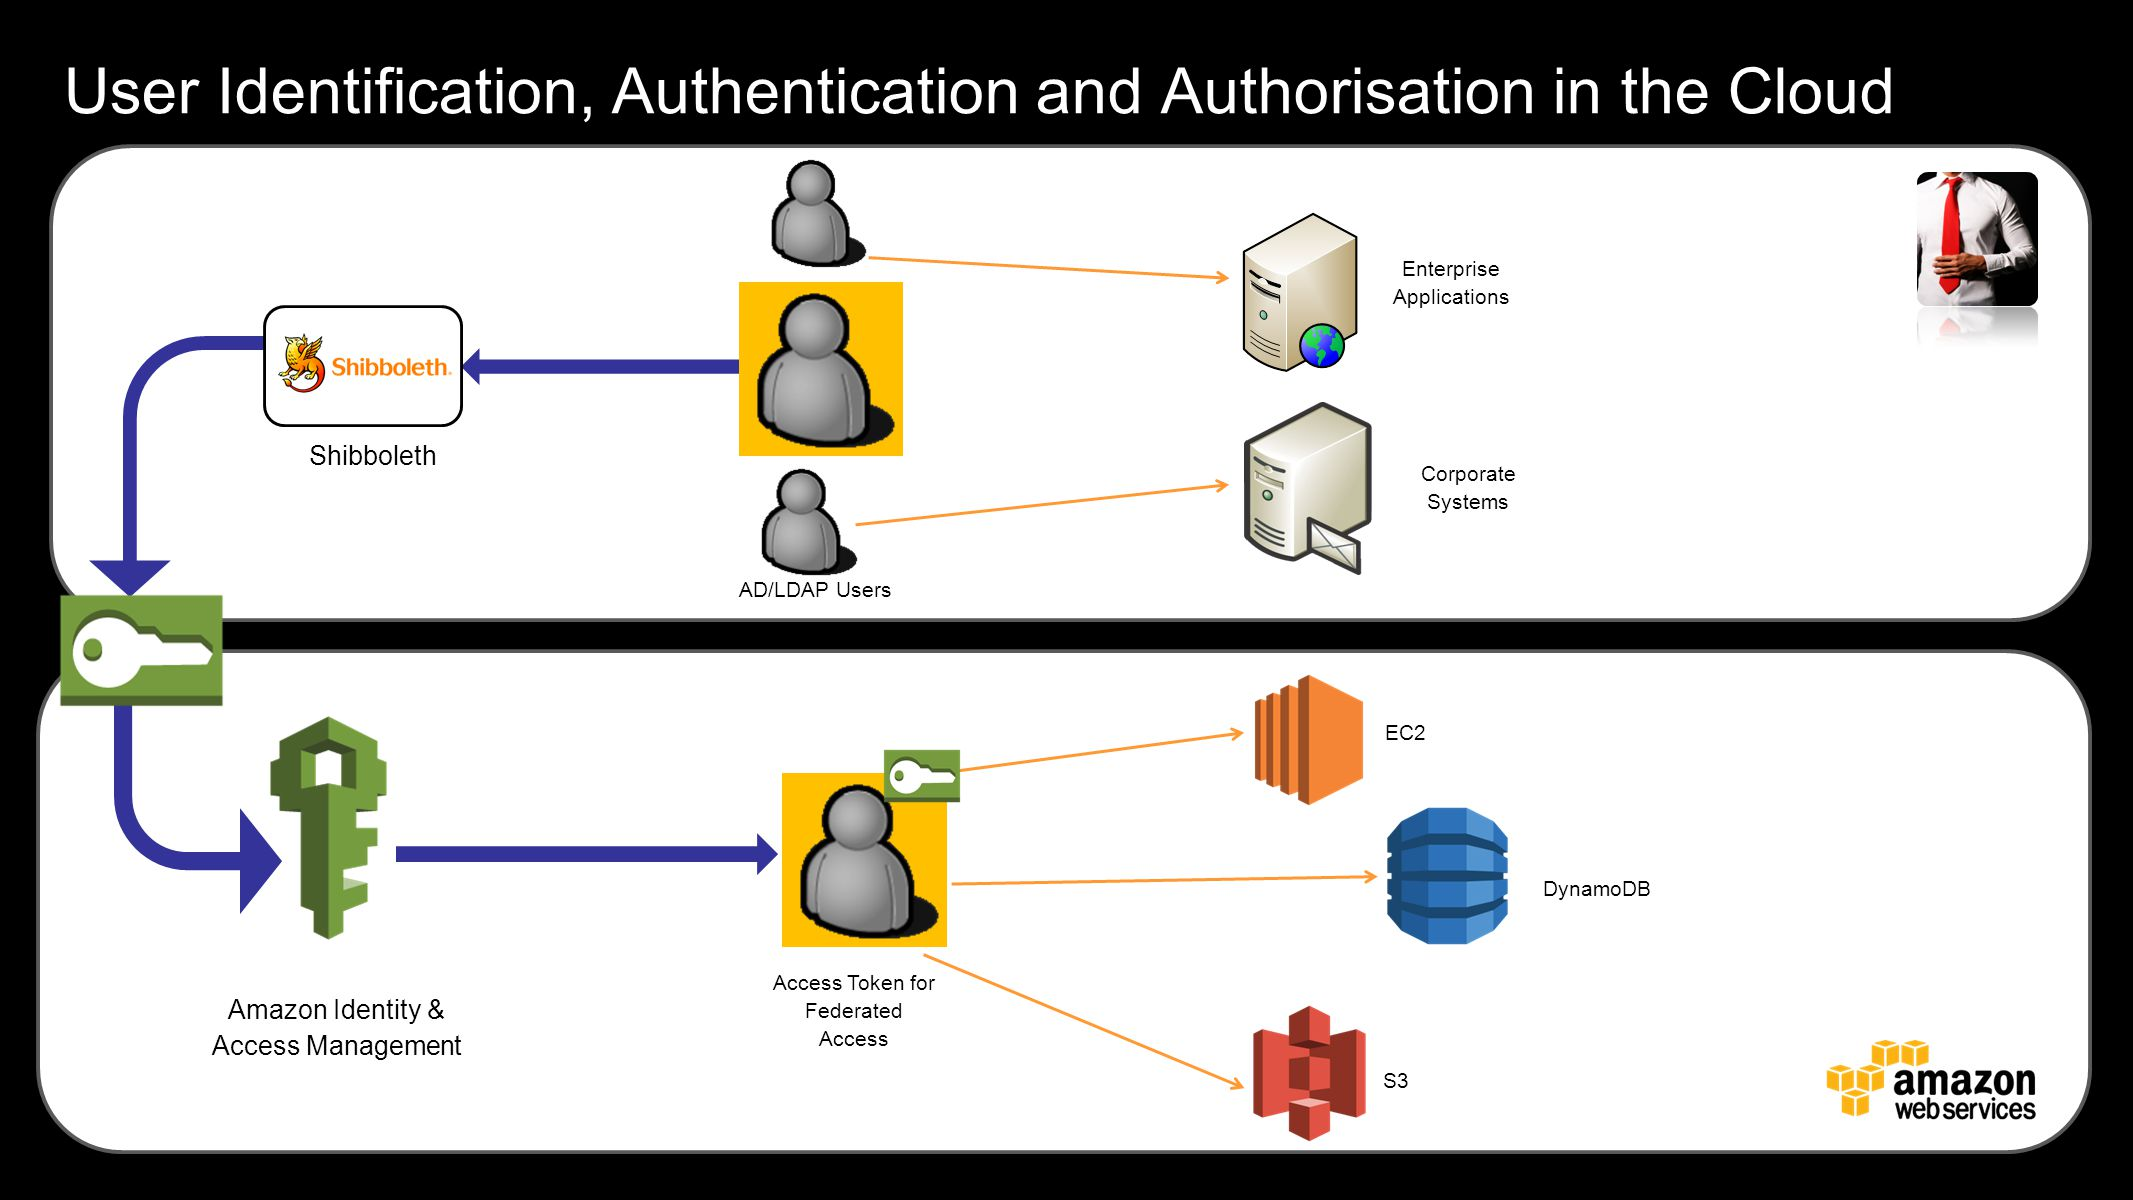 User Identification, Authentication and Authorisation in the Cloud Amazon Identity & Access Management Access Token for Federated Access EC2 DynamoDB